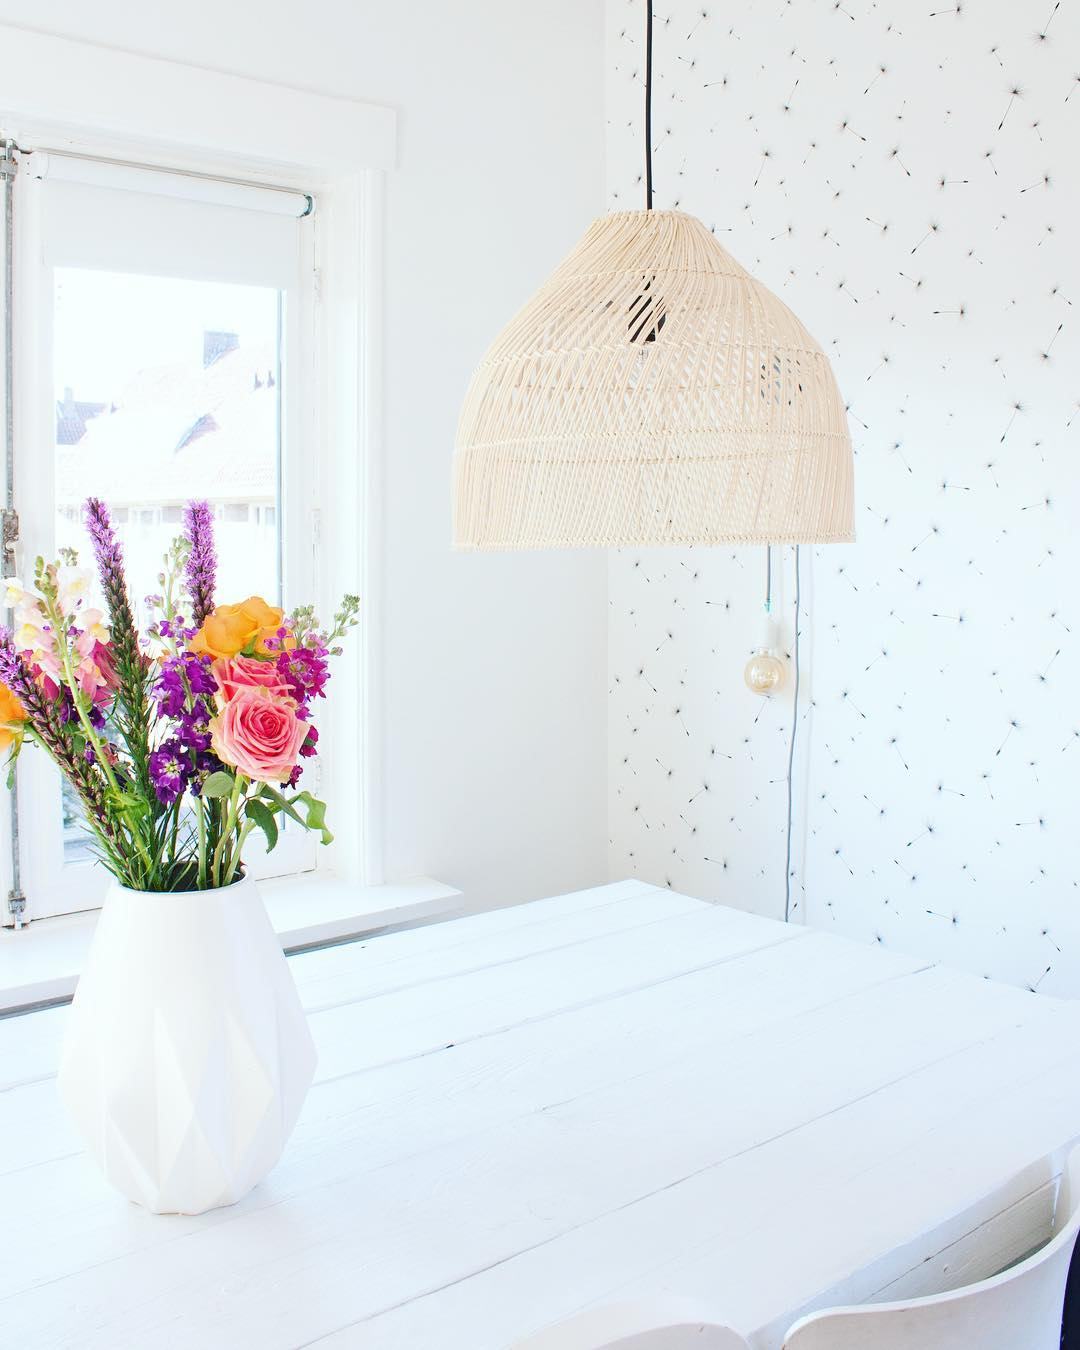 156 Instagram interieur inspiratie top 5